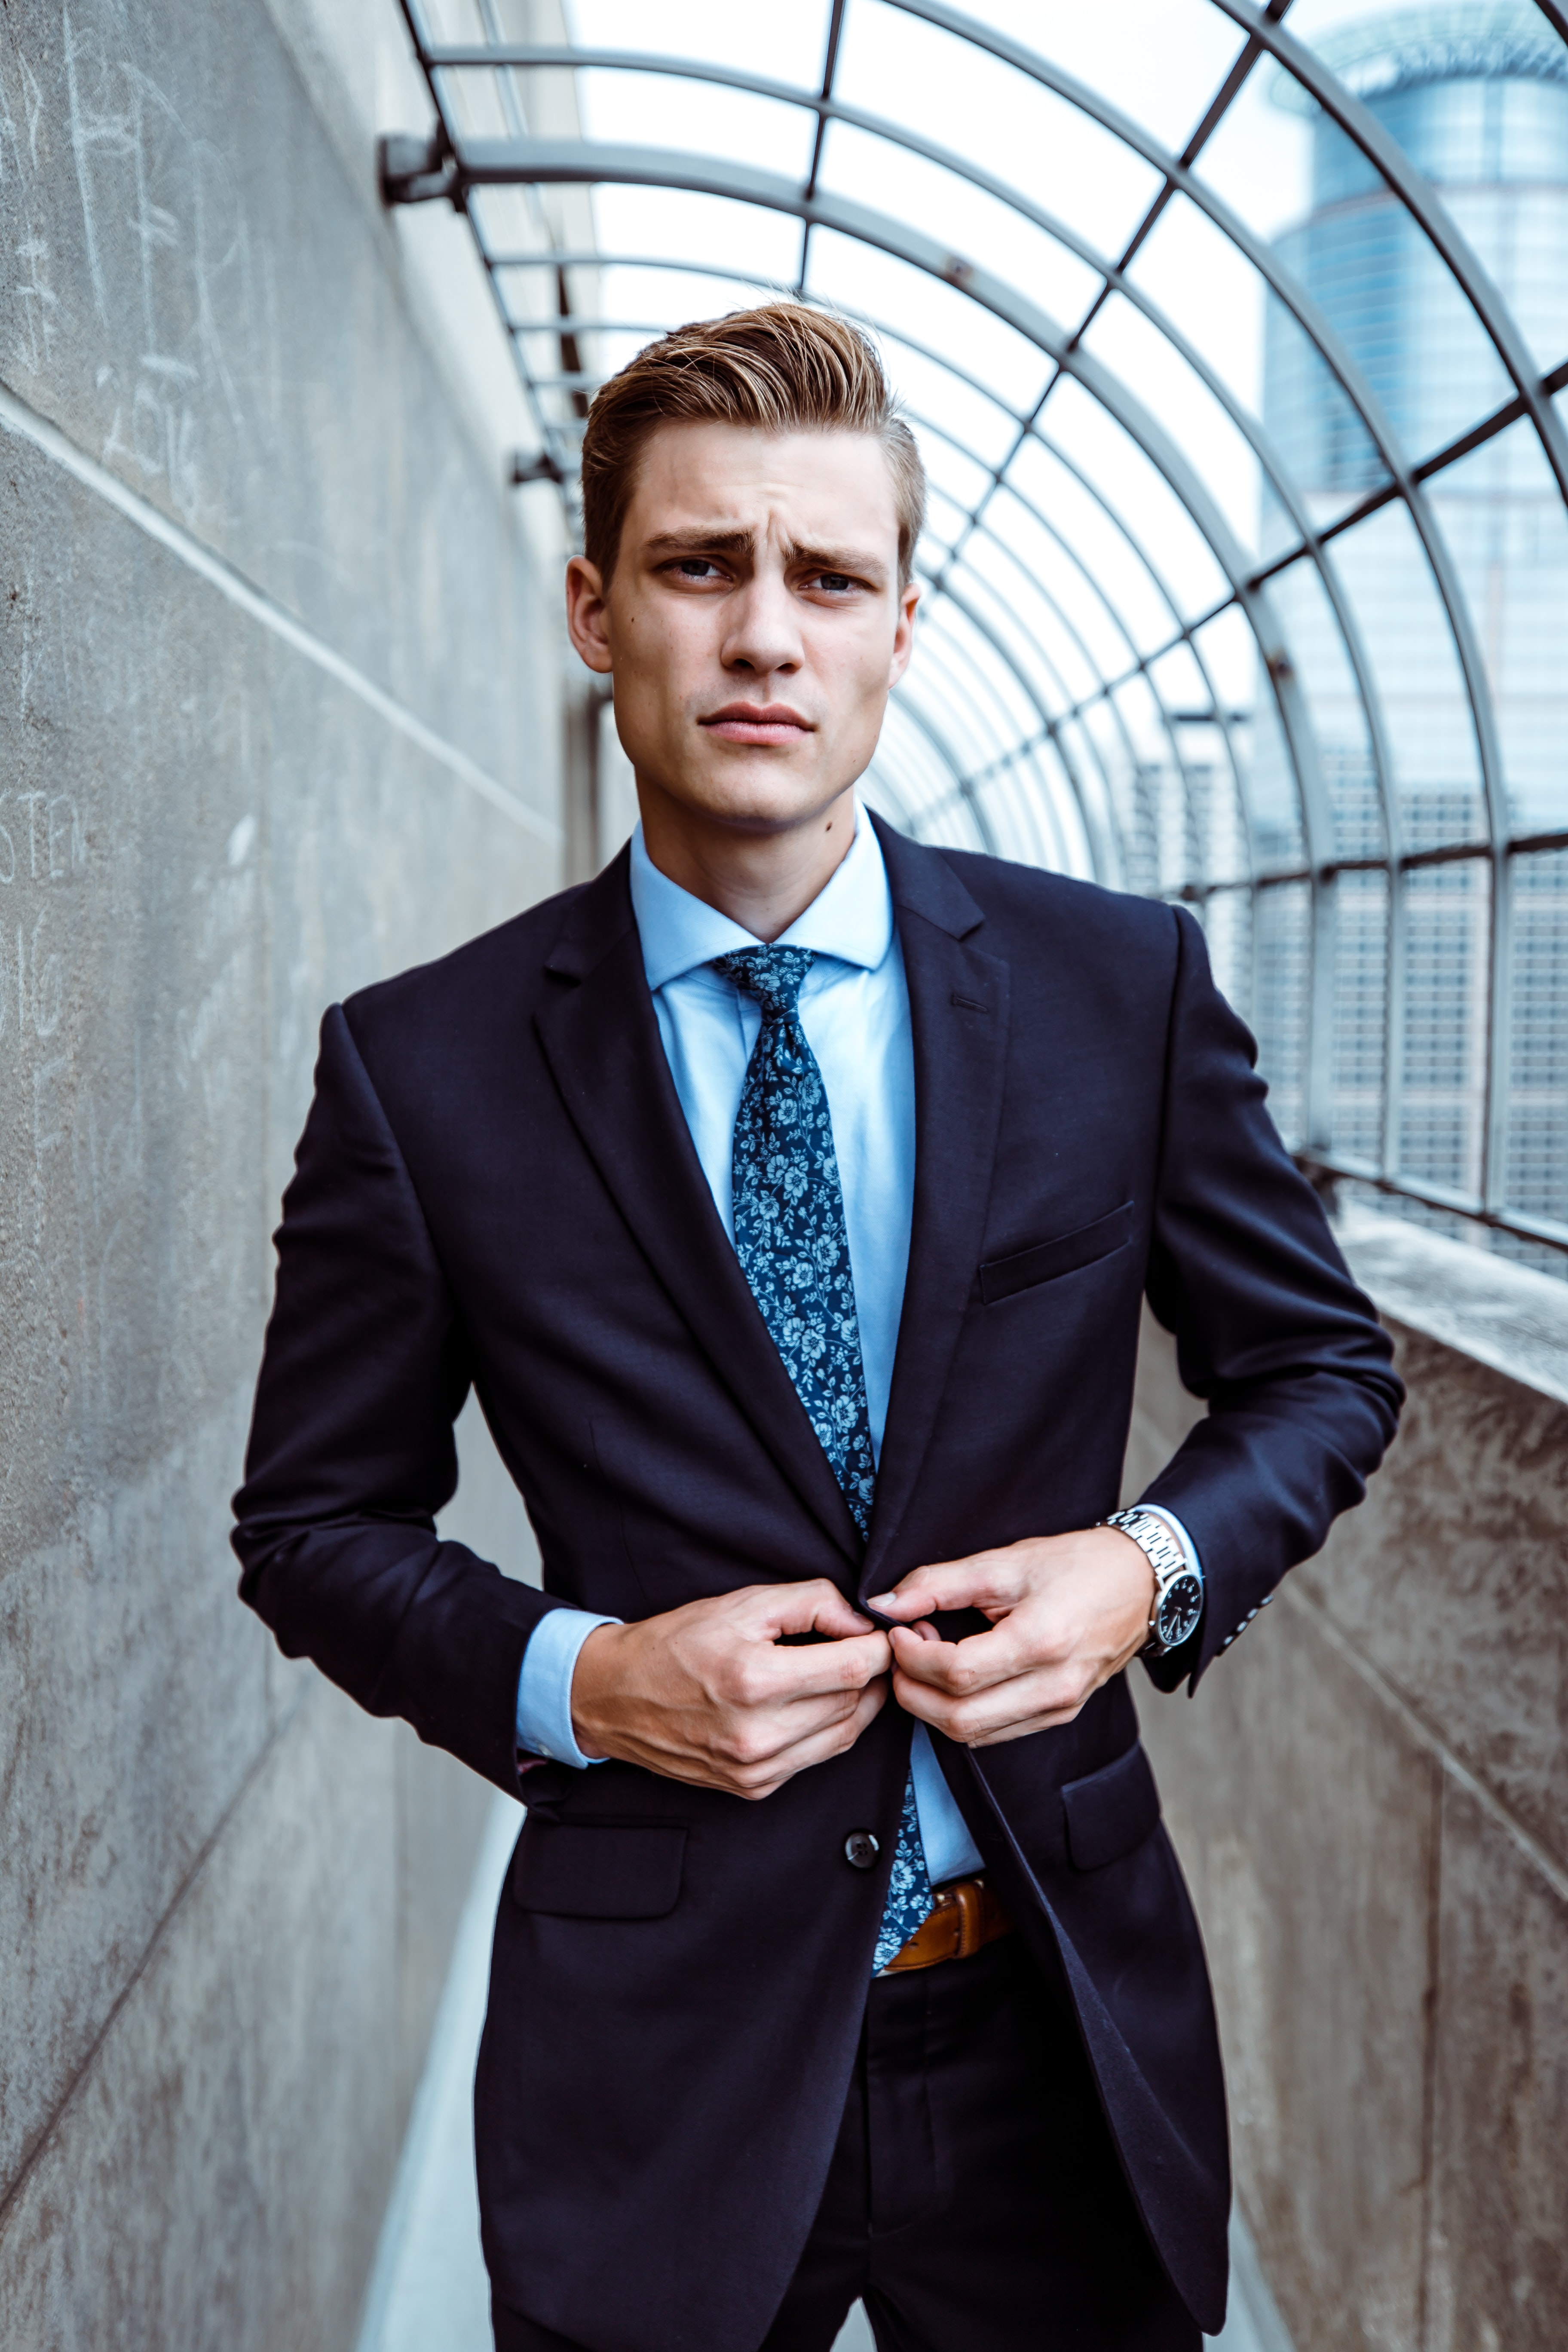 man wearing black and teal dress suit standing near gray wall